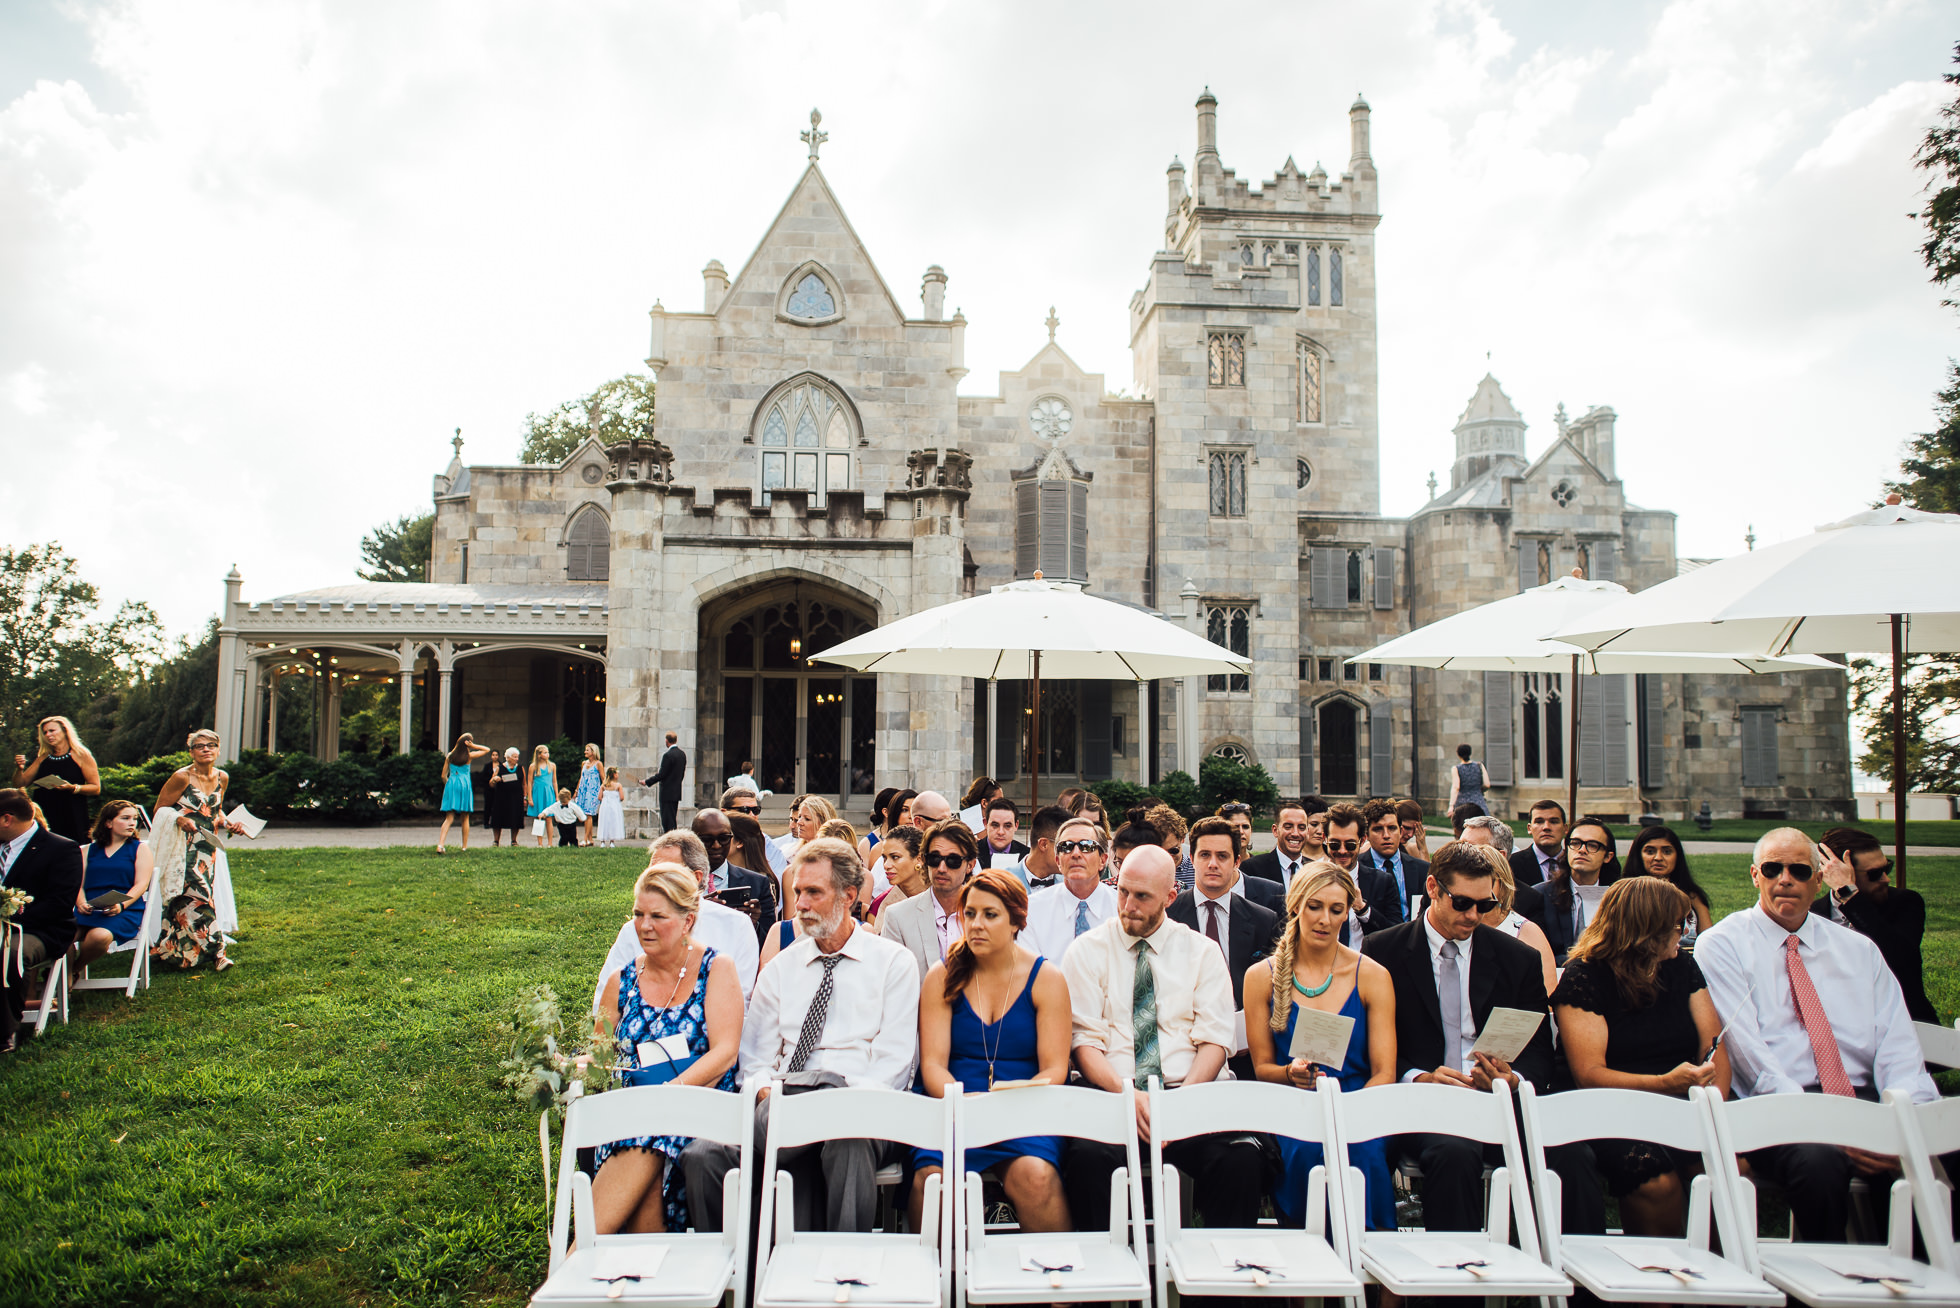 wedding ceremony on lawn at lyndhurst castle photographed by traverse the tides